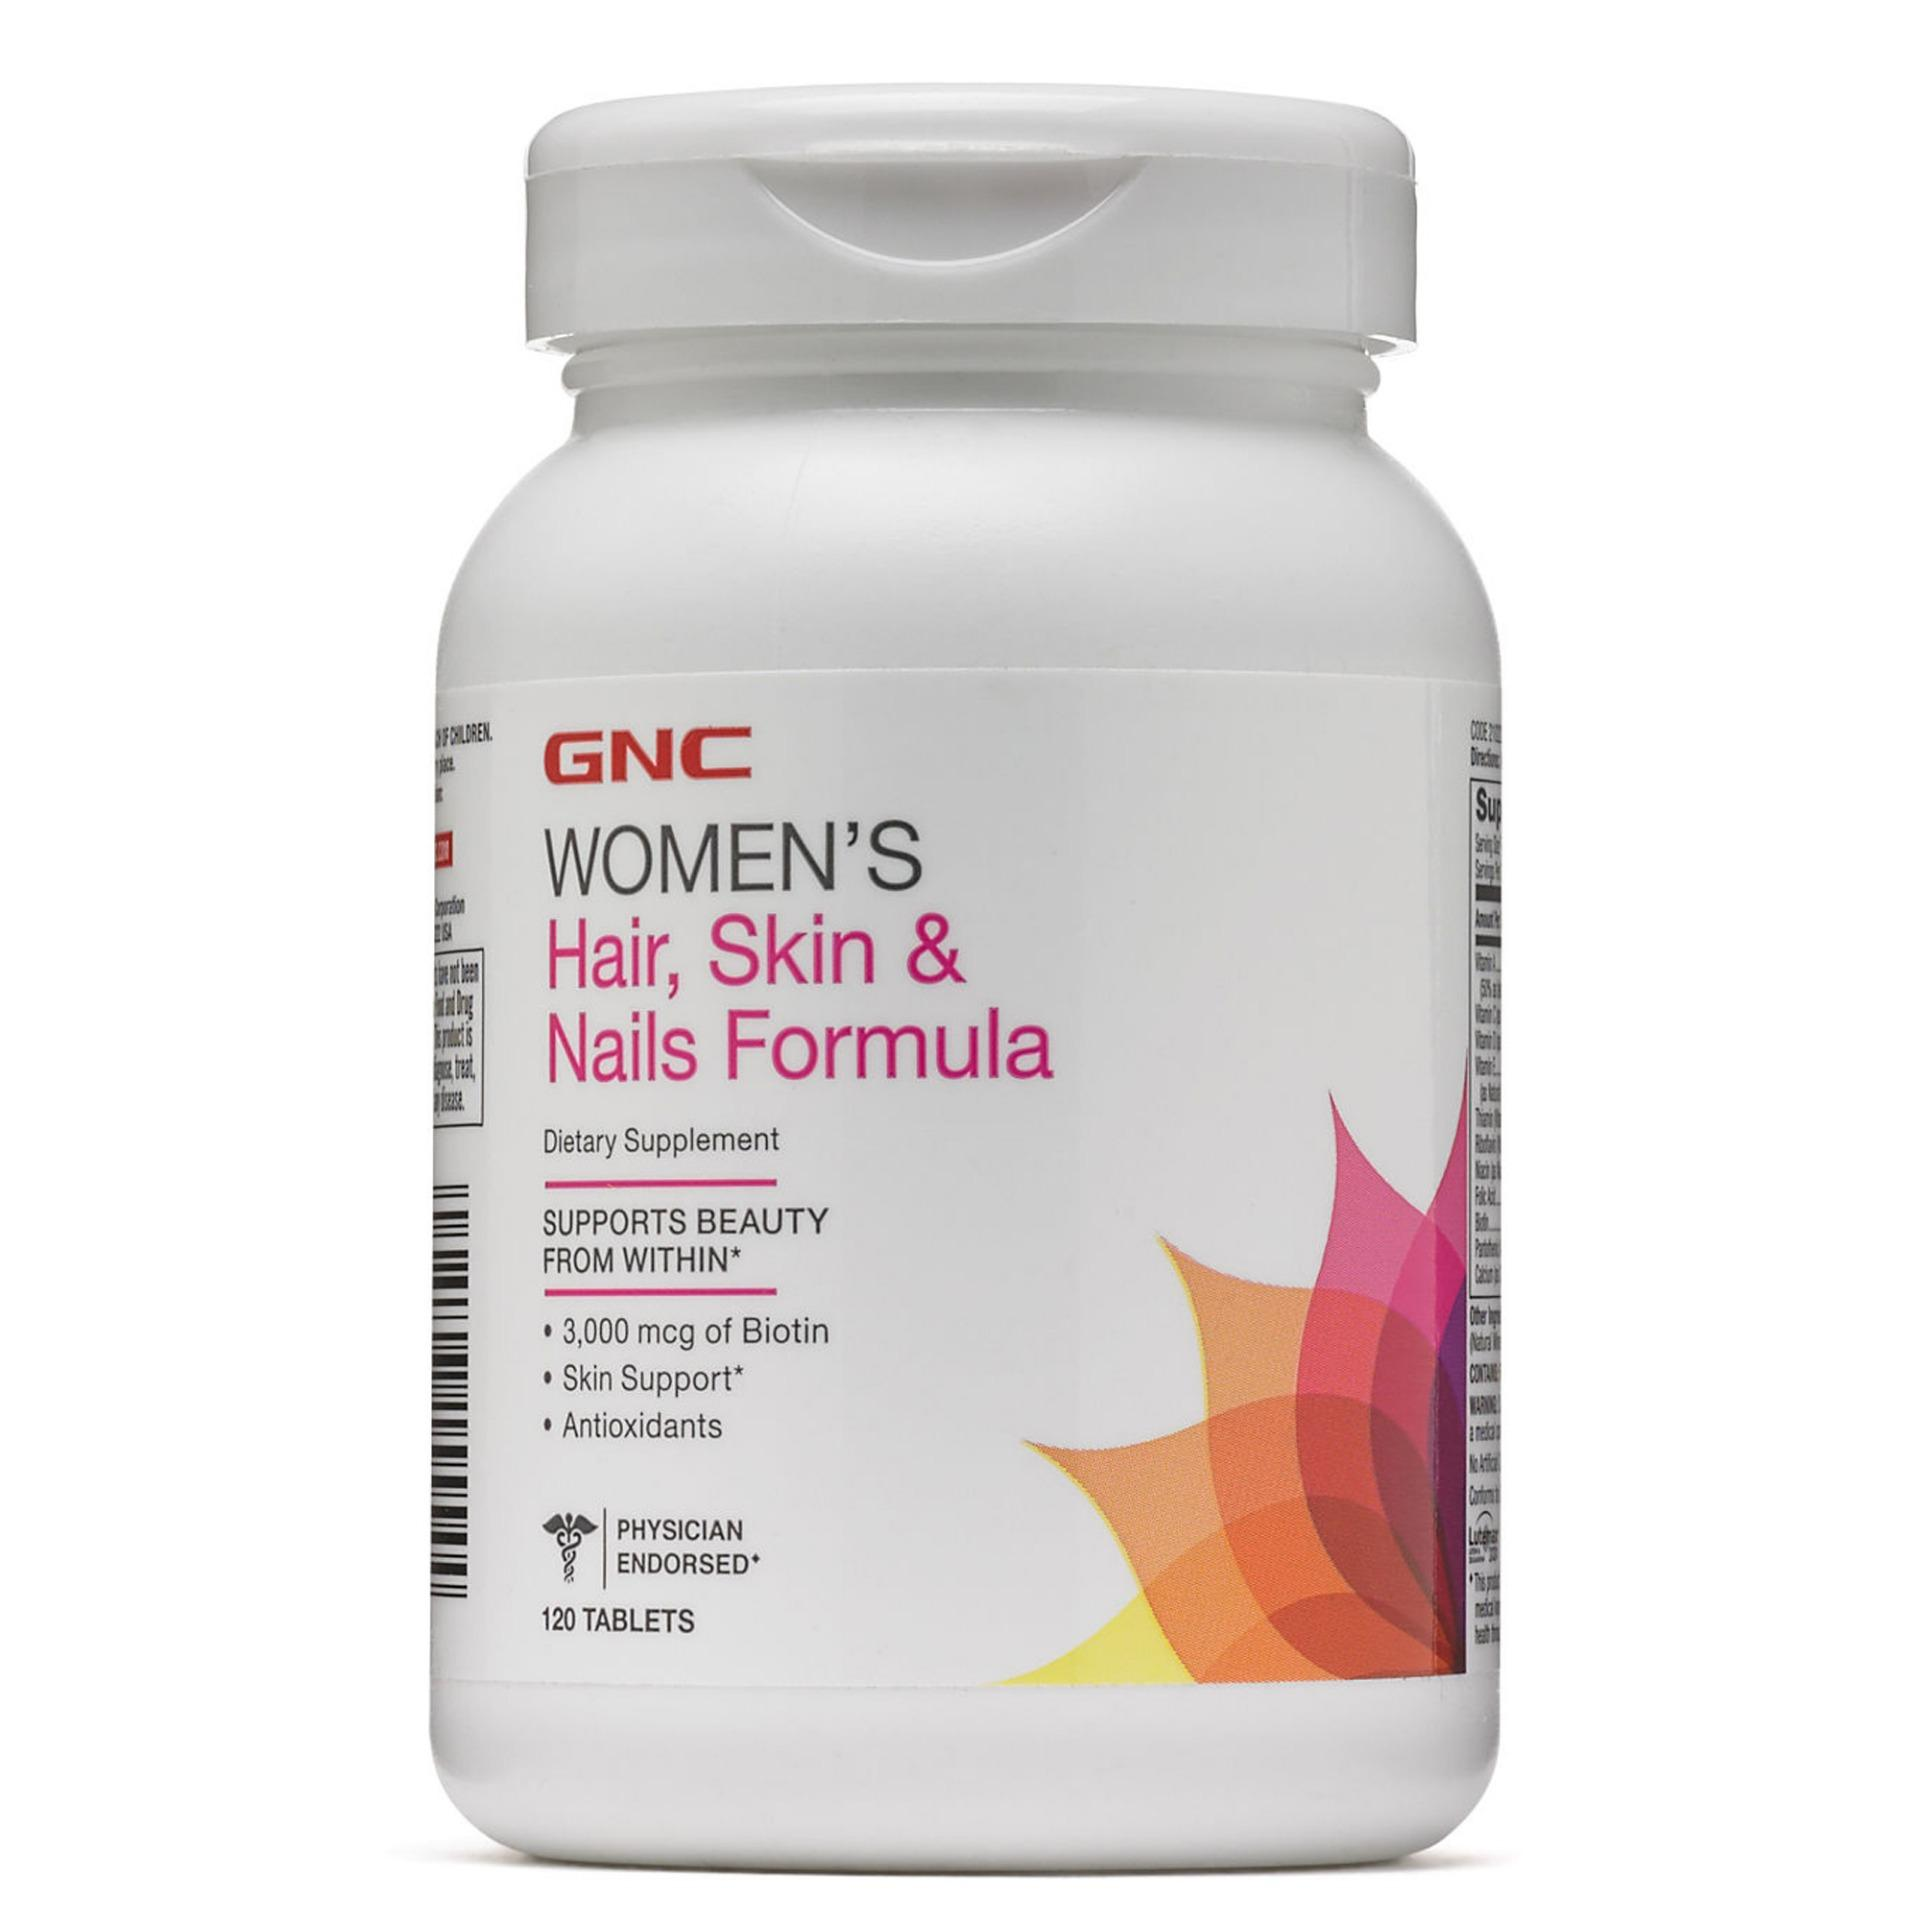 Gnc Womens Hair, Skin & Nails Formula 120 Tablets By Qq Wellness.